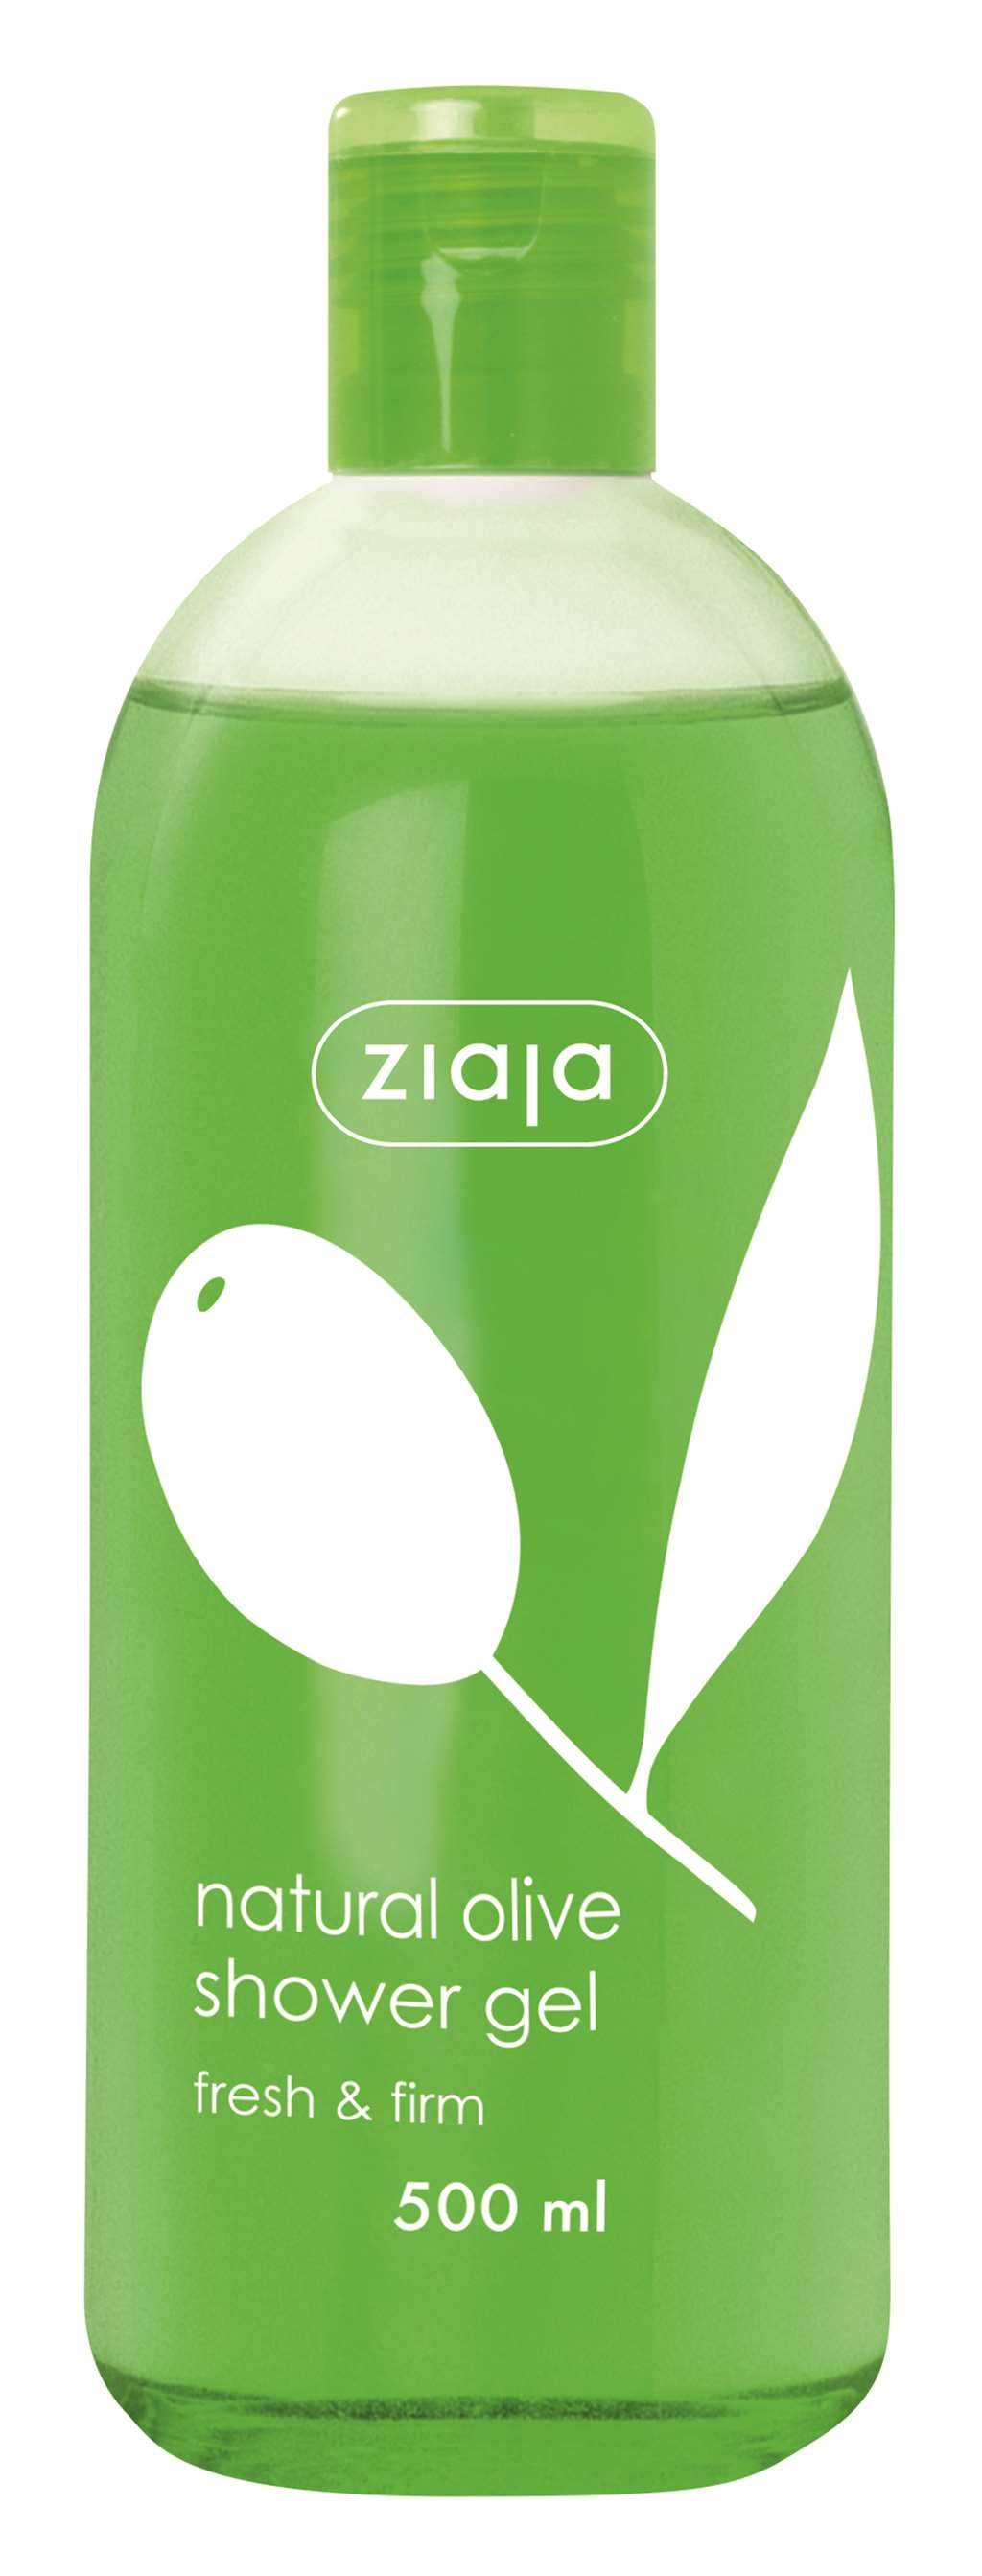 ziaja_natural_olive_showergel